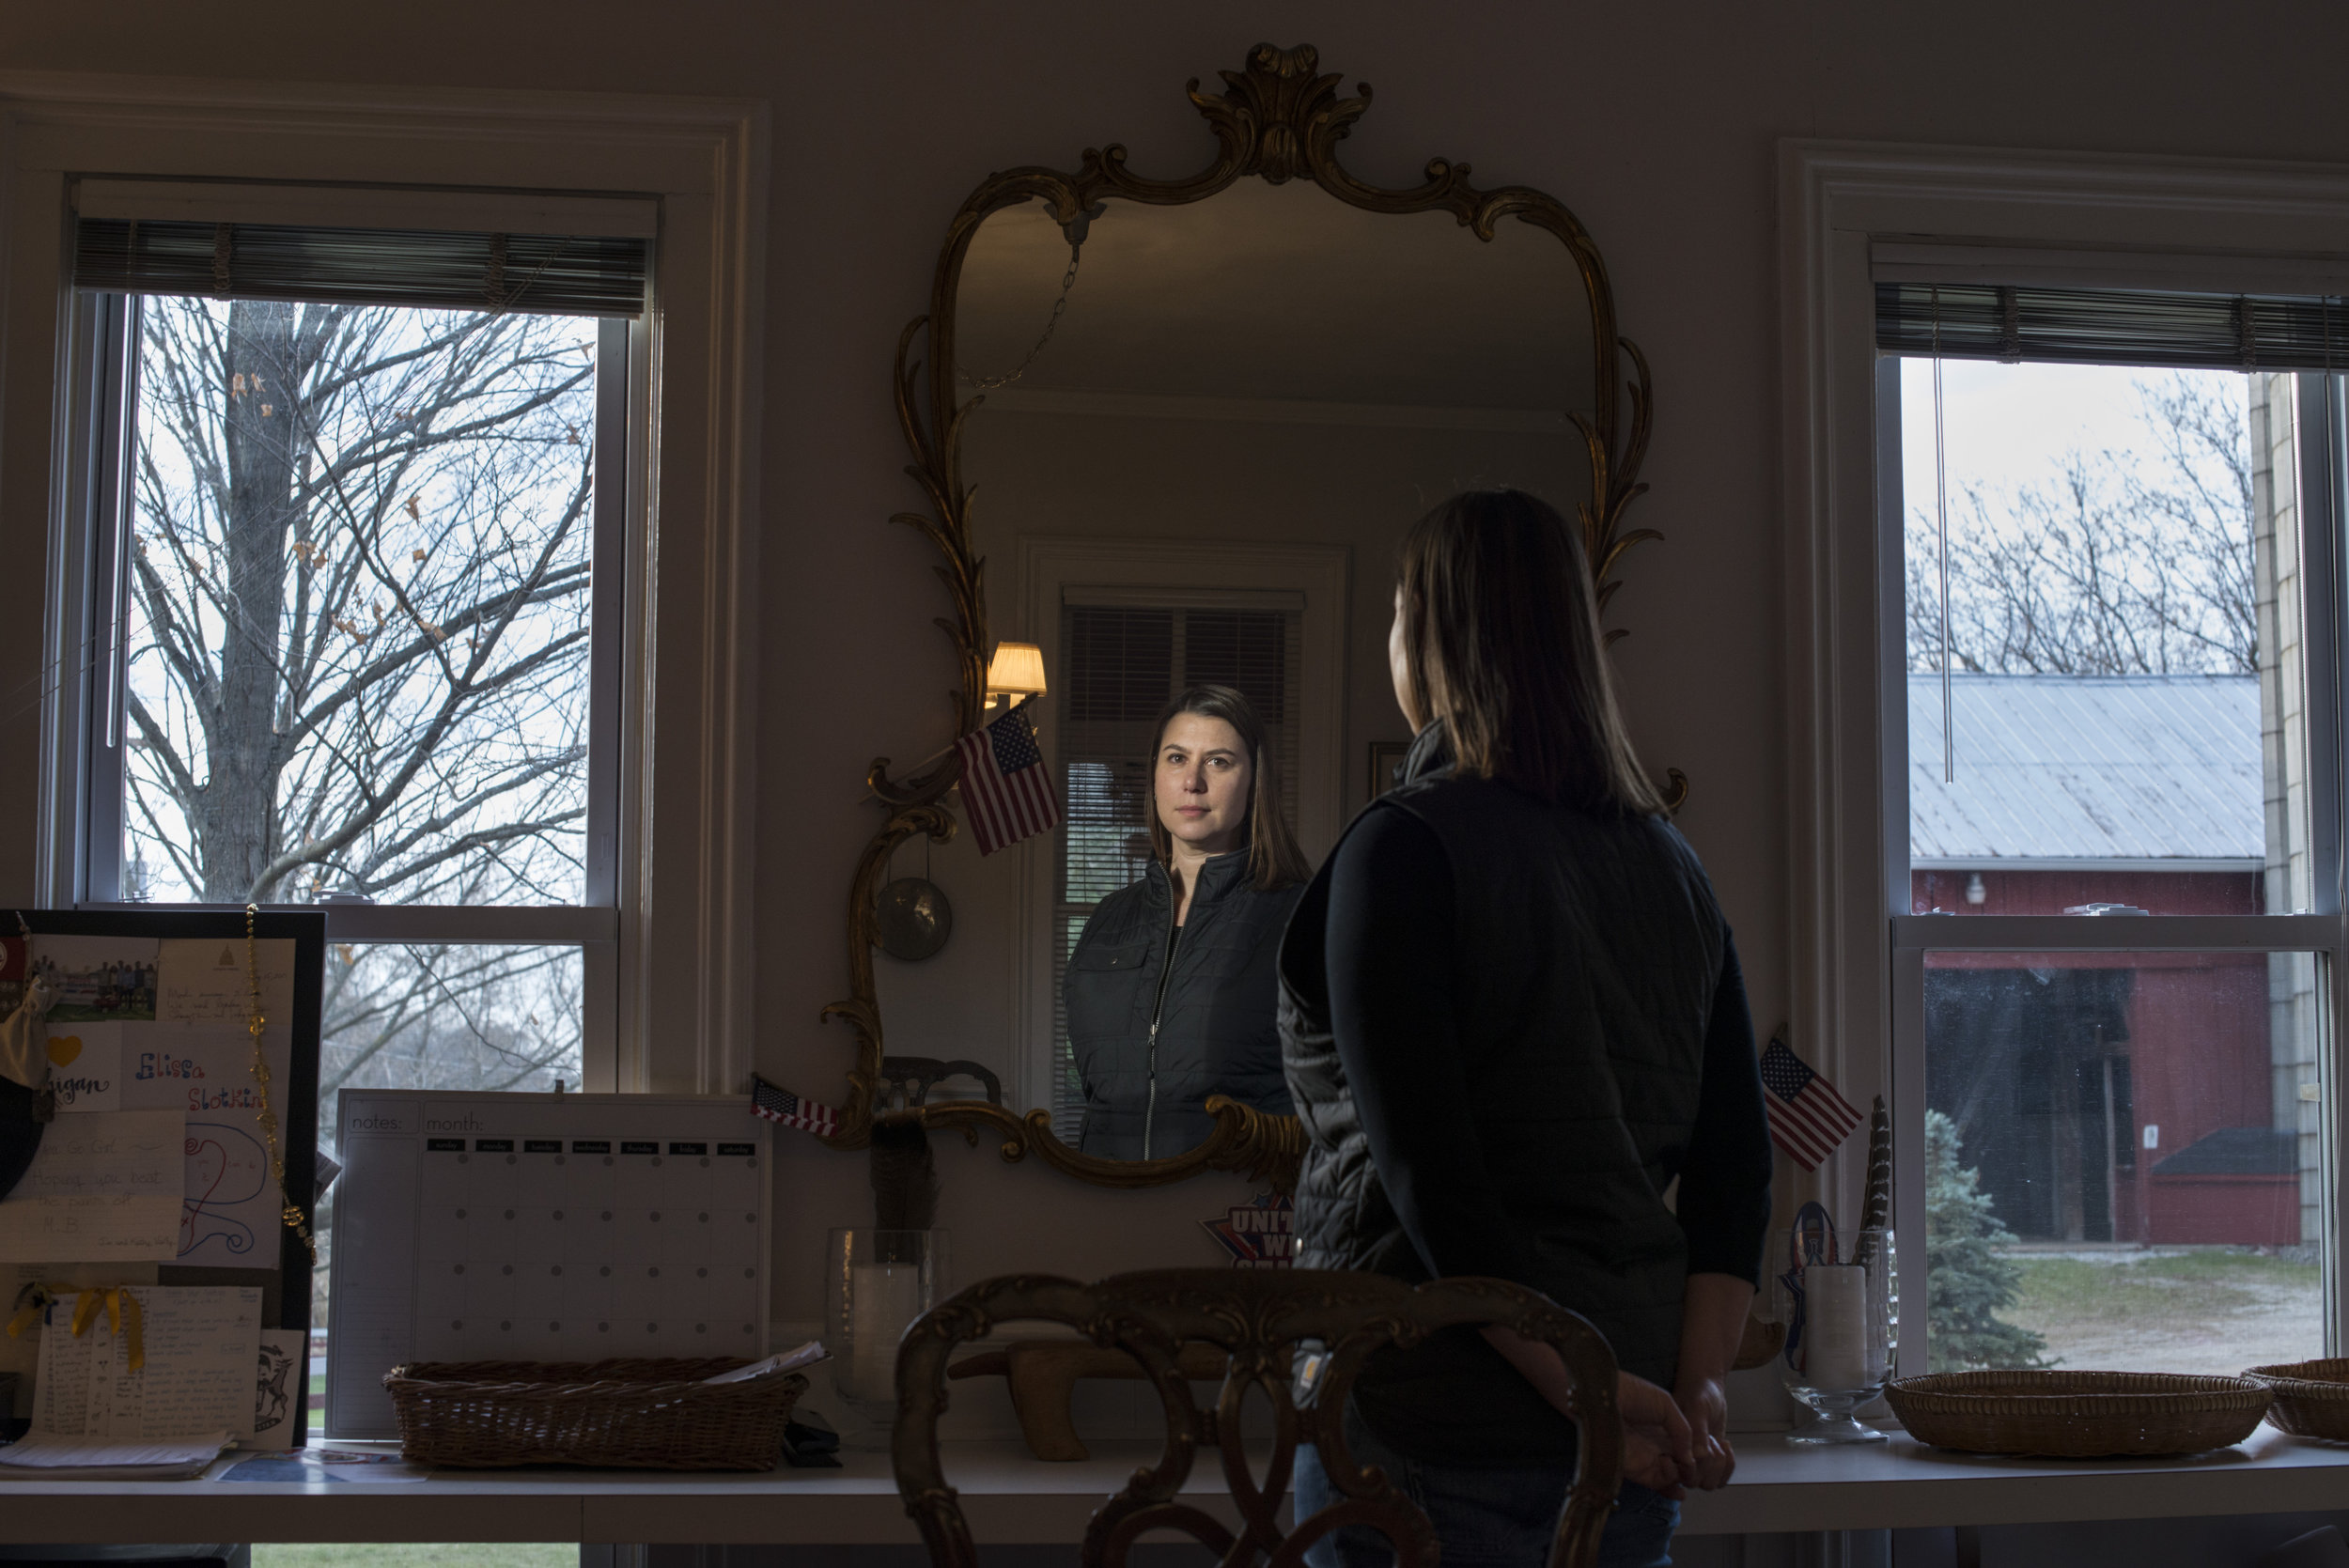 Congressional candidate for Michigan's 8th District, Elissa Slotkin, 41, at her home in Holly, Mich., on Saturday, December 2, 2017. Slotkin is the former Acting Assistant Secretary of Defense for International Security Affairs.